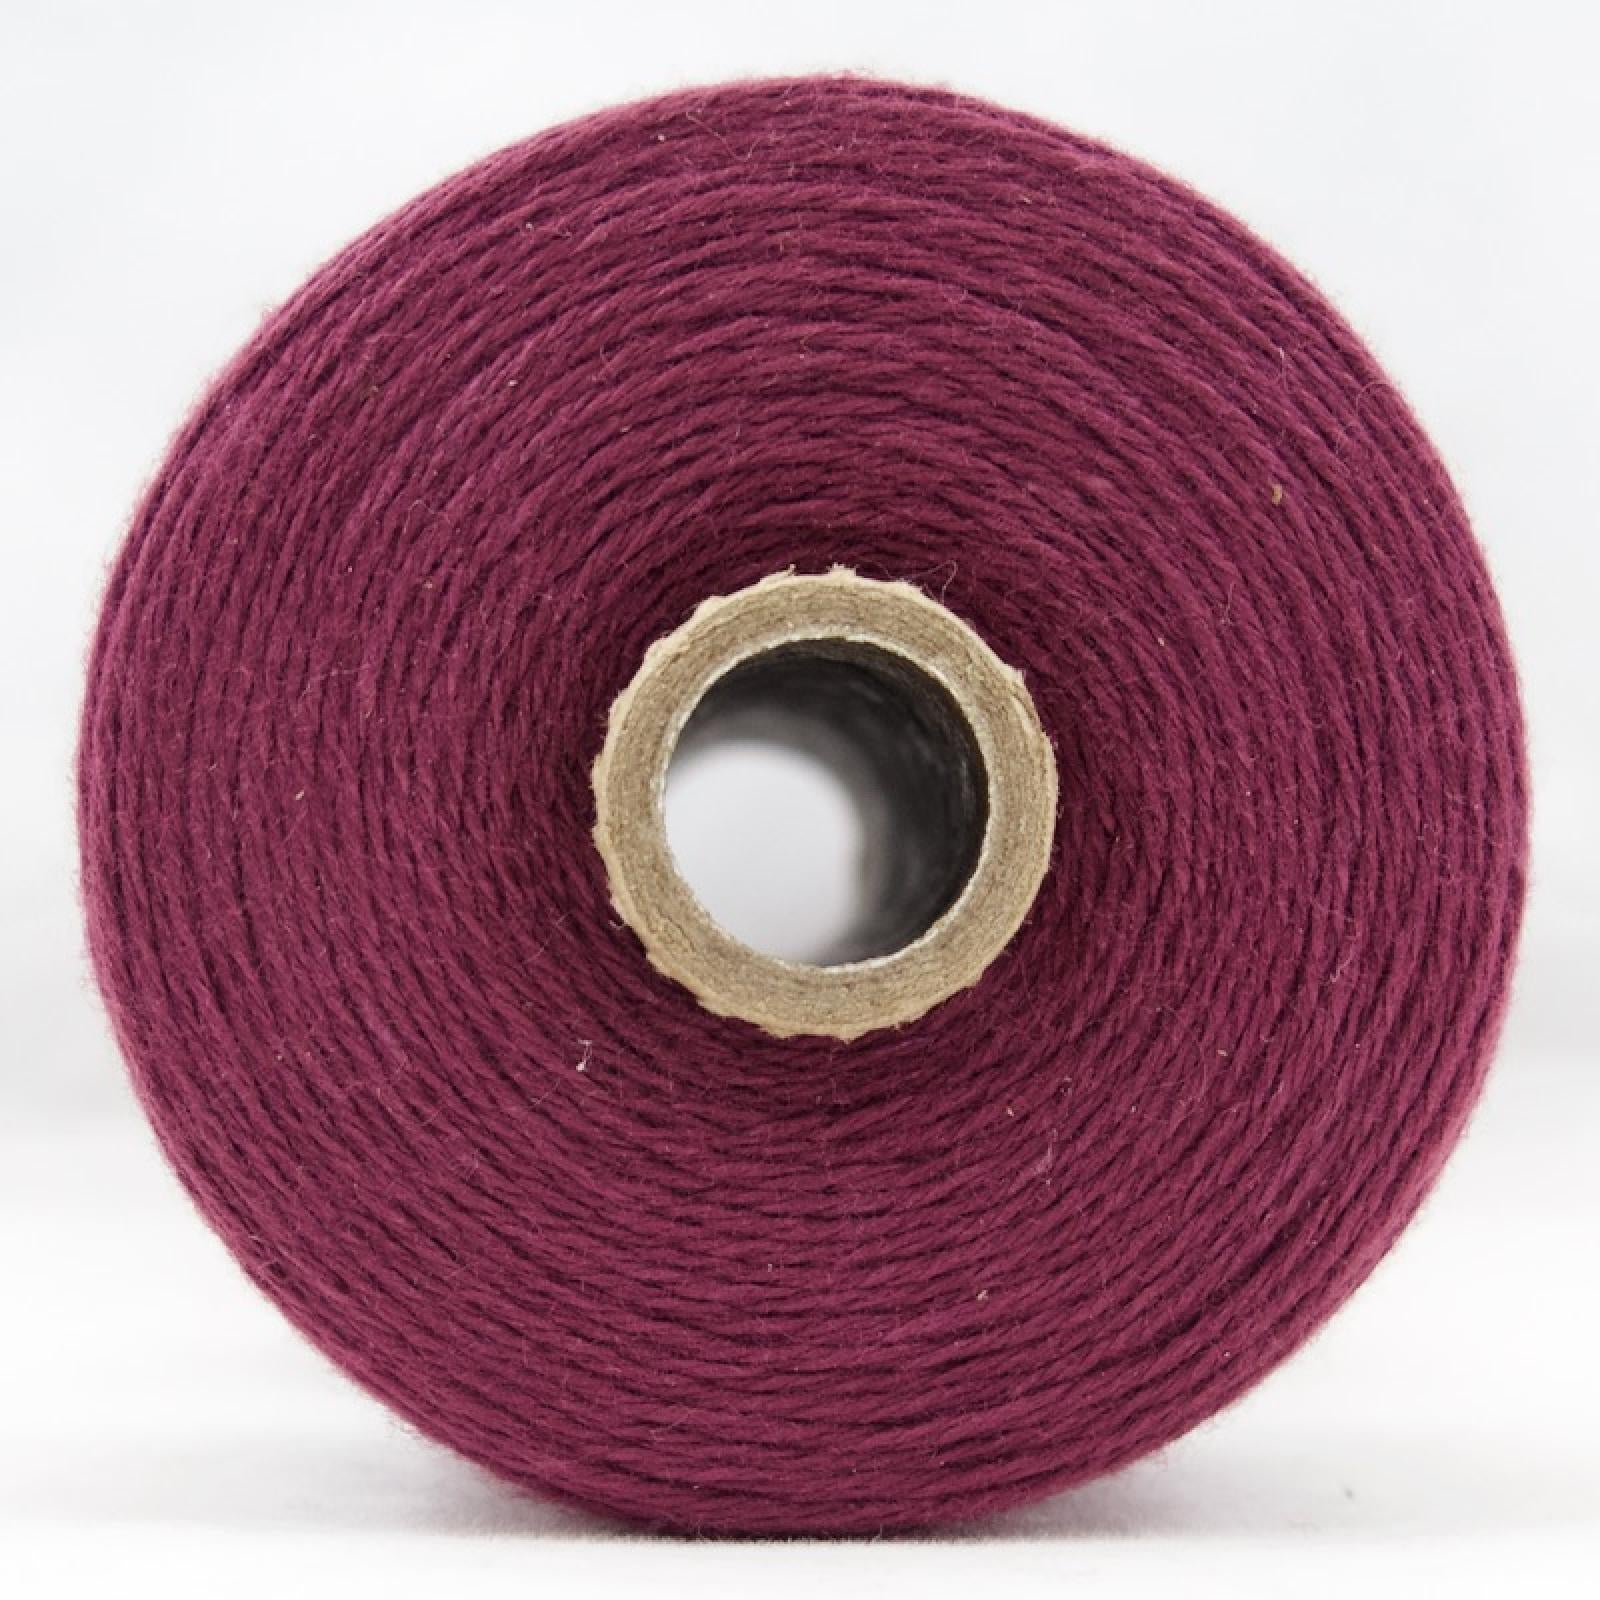 Brassard 8/2 Bamboo Weaving Yarn